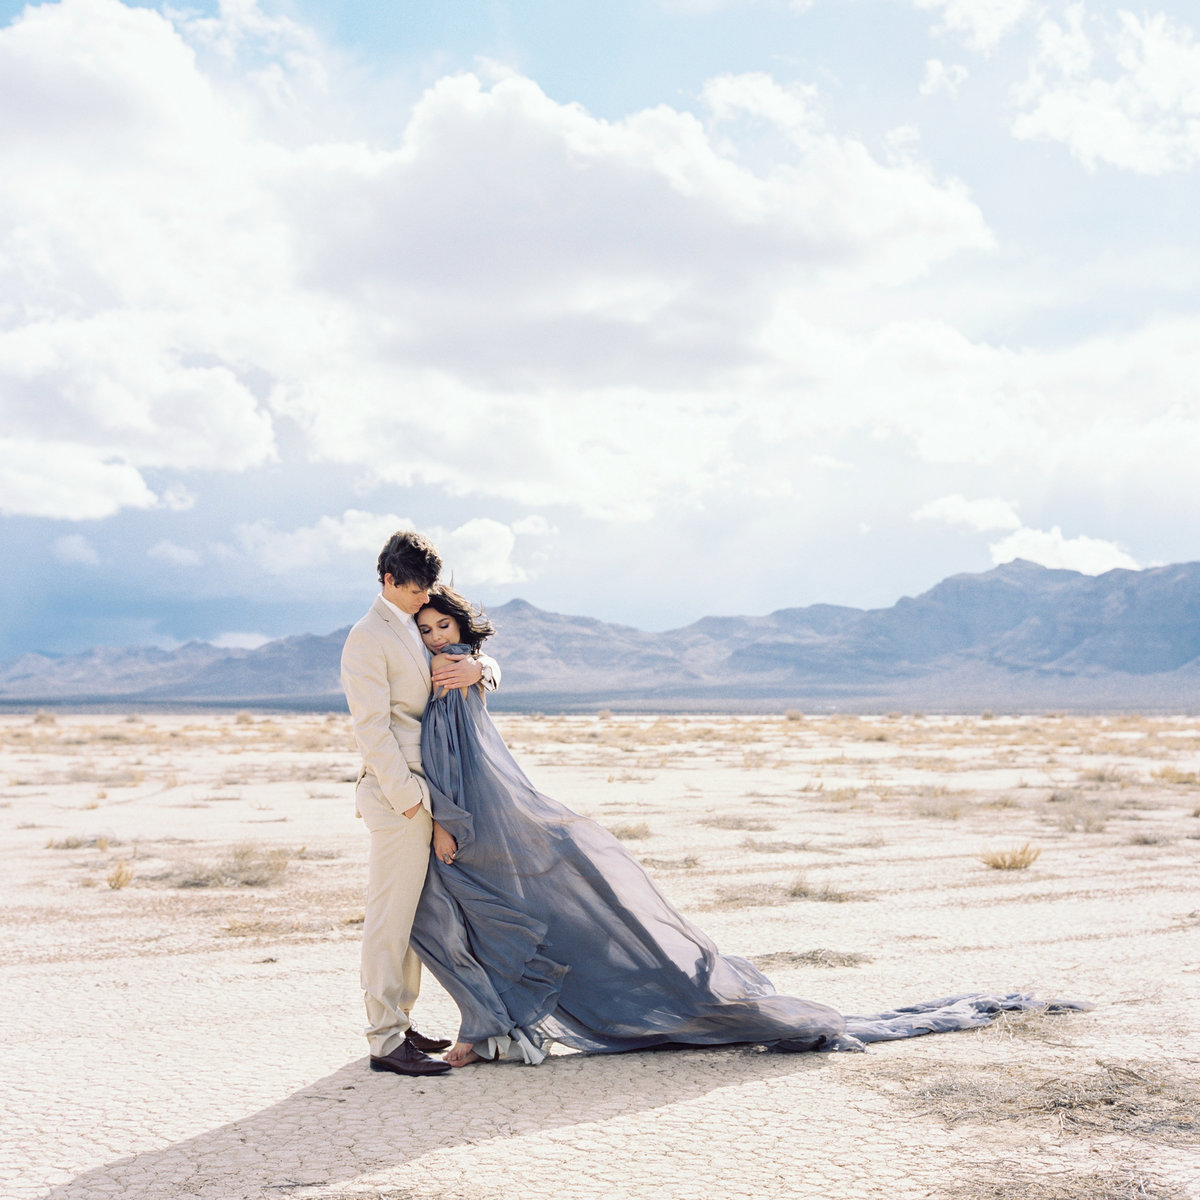 philip-casey-photography-desert-oasis-editorial-session-14